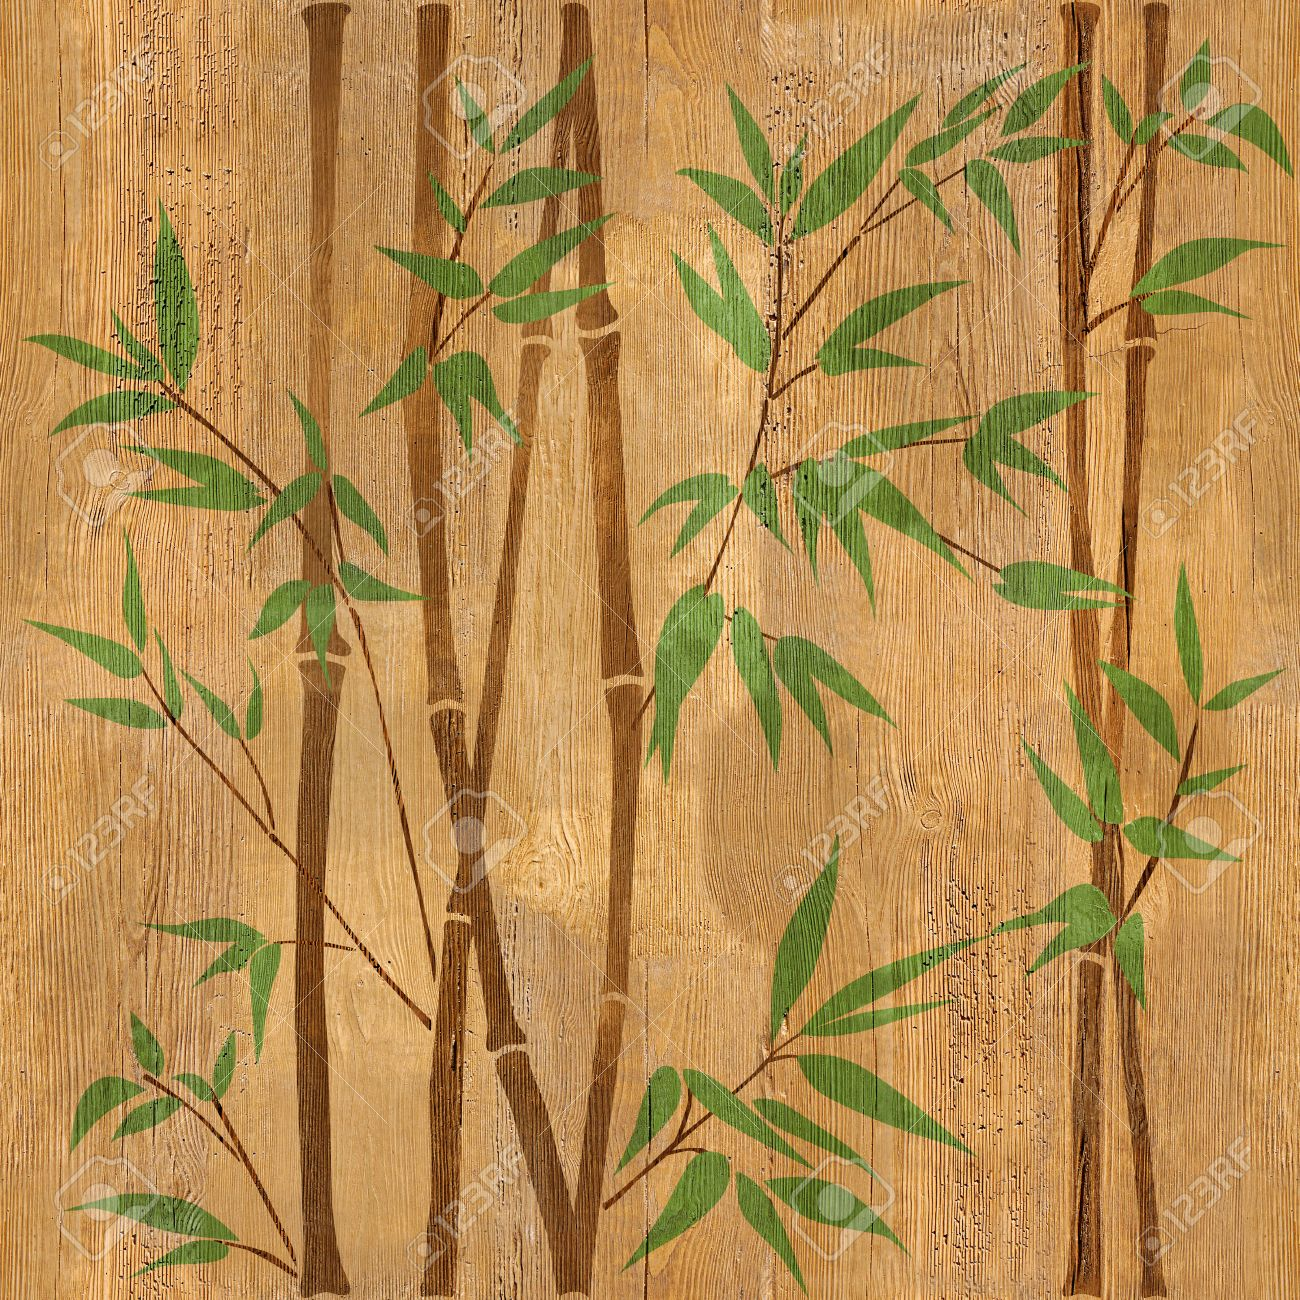 Decorative Bamboo Branches Bamboo Forest Background Seamless